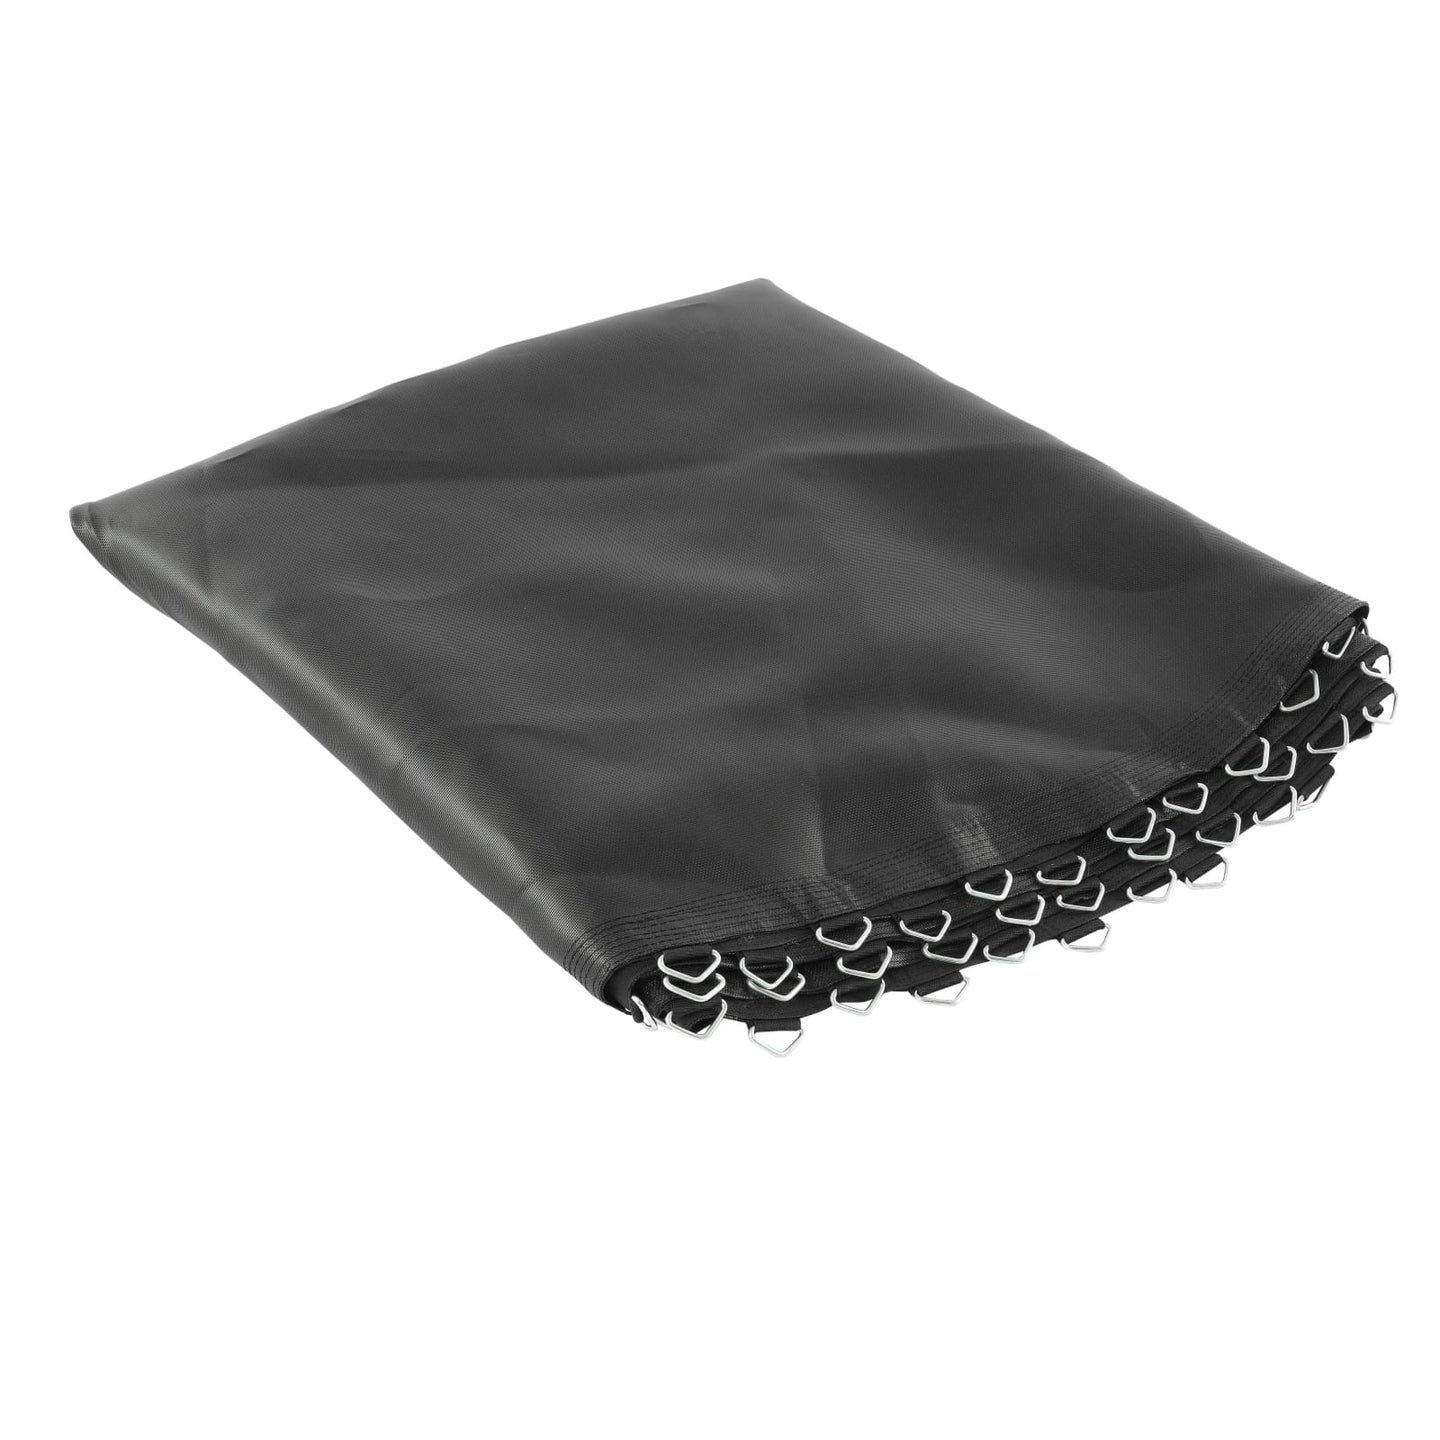 Upper Bounce Trampoline Replacement Jumping Mat Fits For 12 Ft. Round Frames W/ 72 V-Rings 7 Springs - Trampoline Replacements